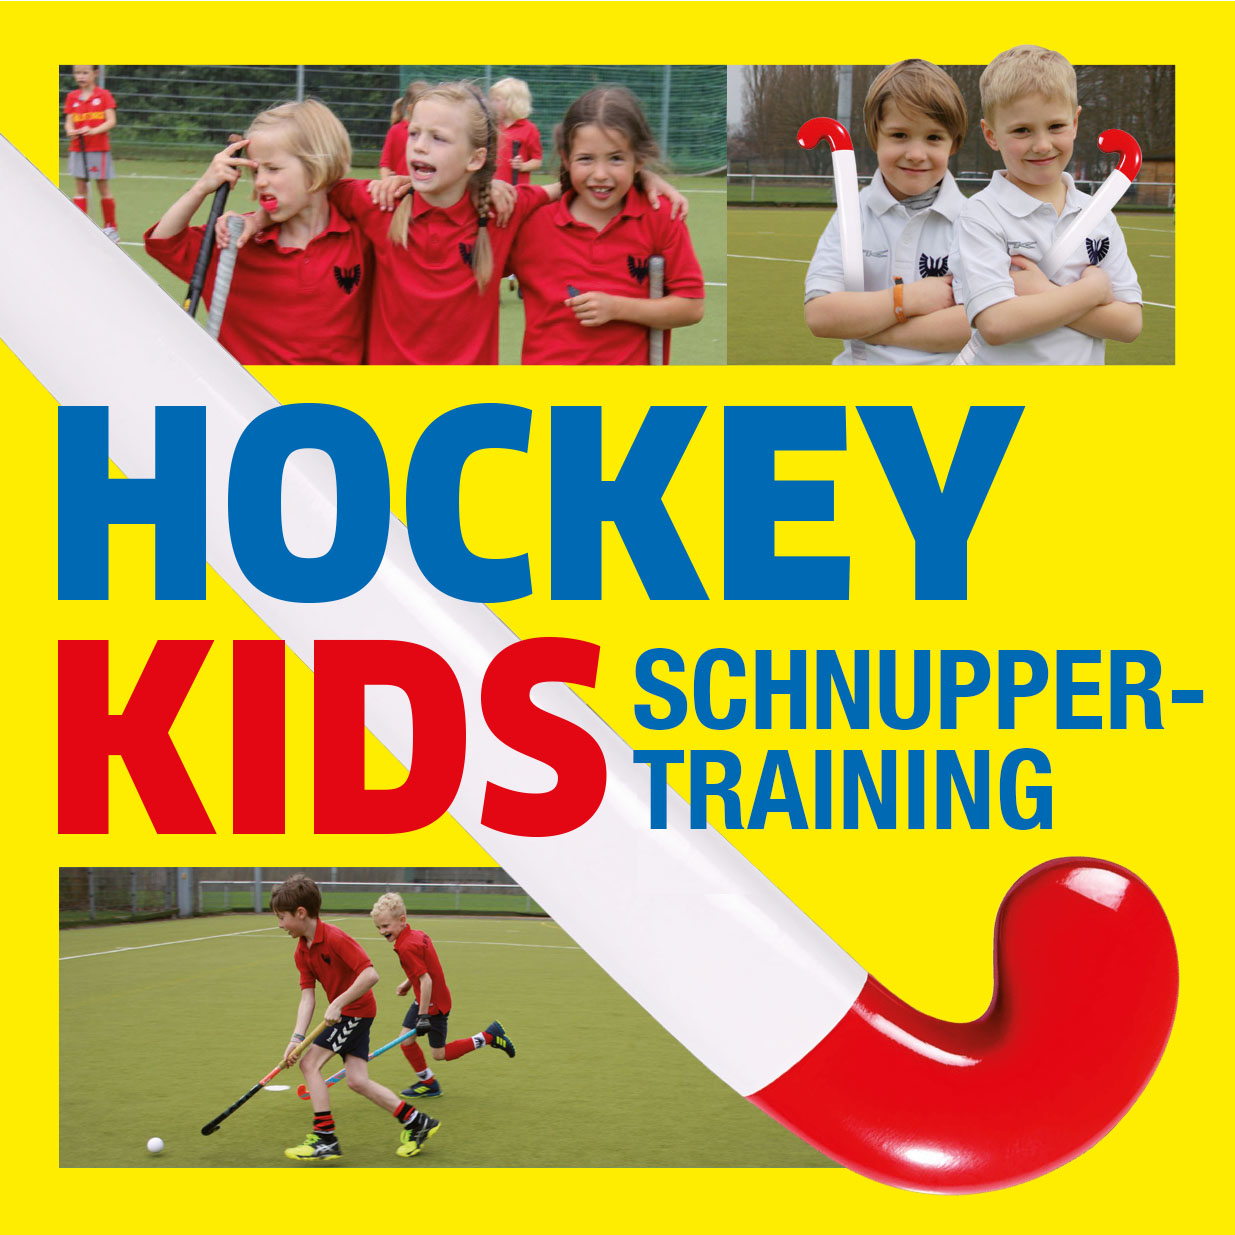 Hockey Kids Sondertraining